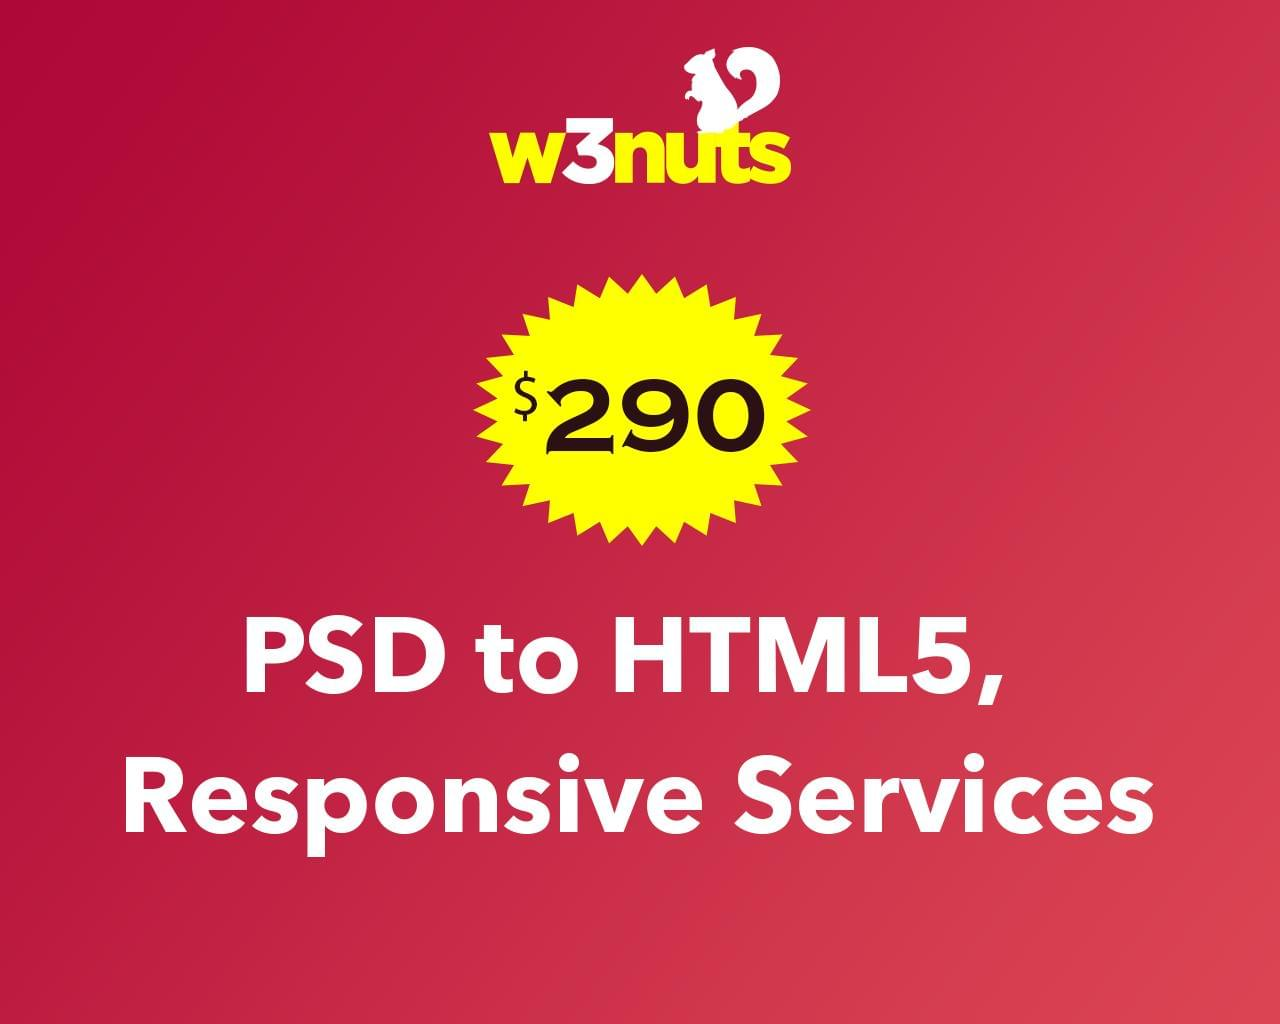 5 Page PSD to HTML5 Responsive by samirkaila - 116123